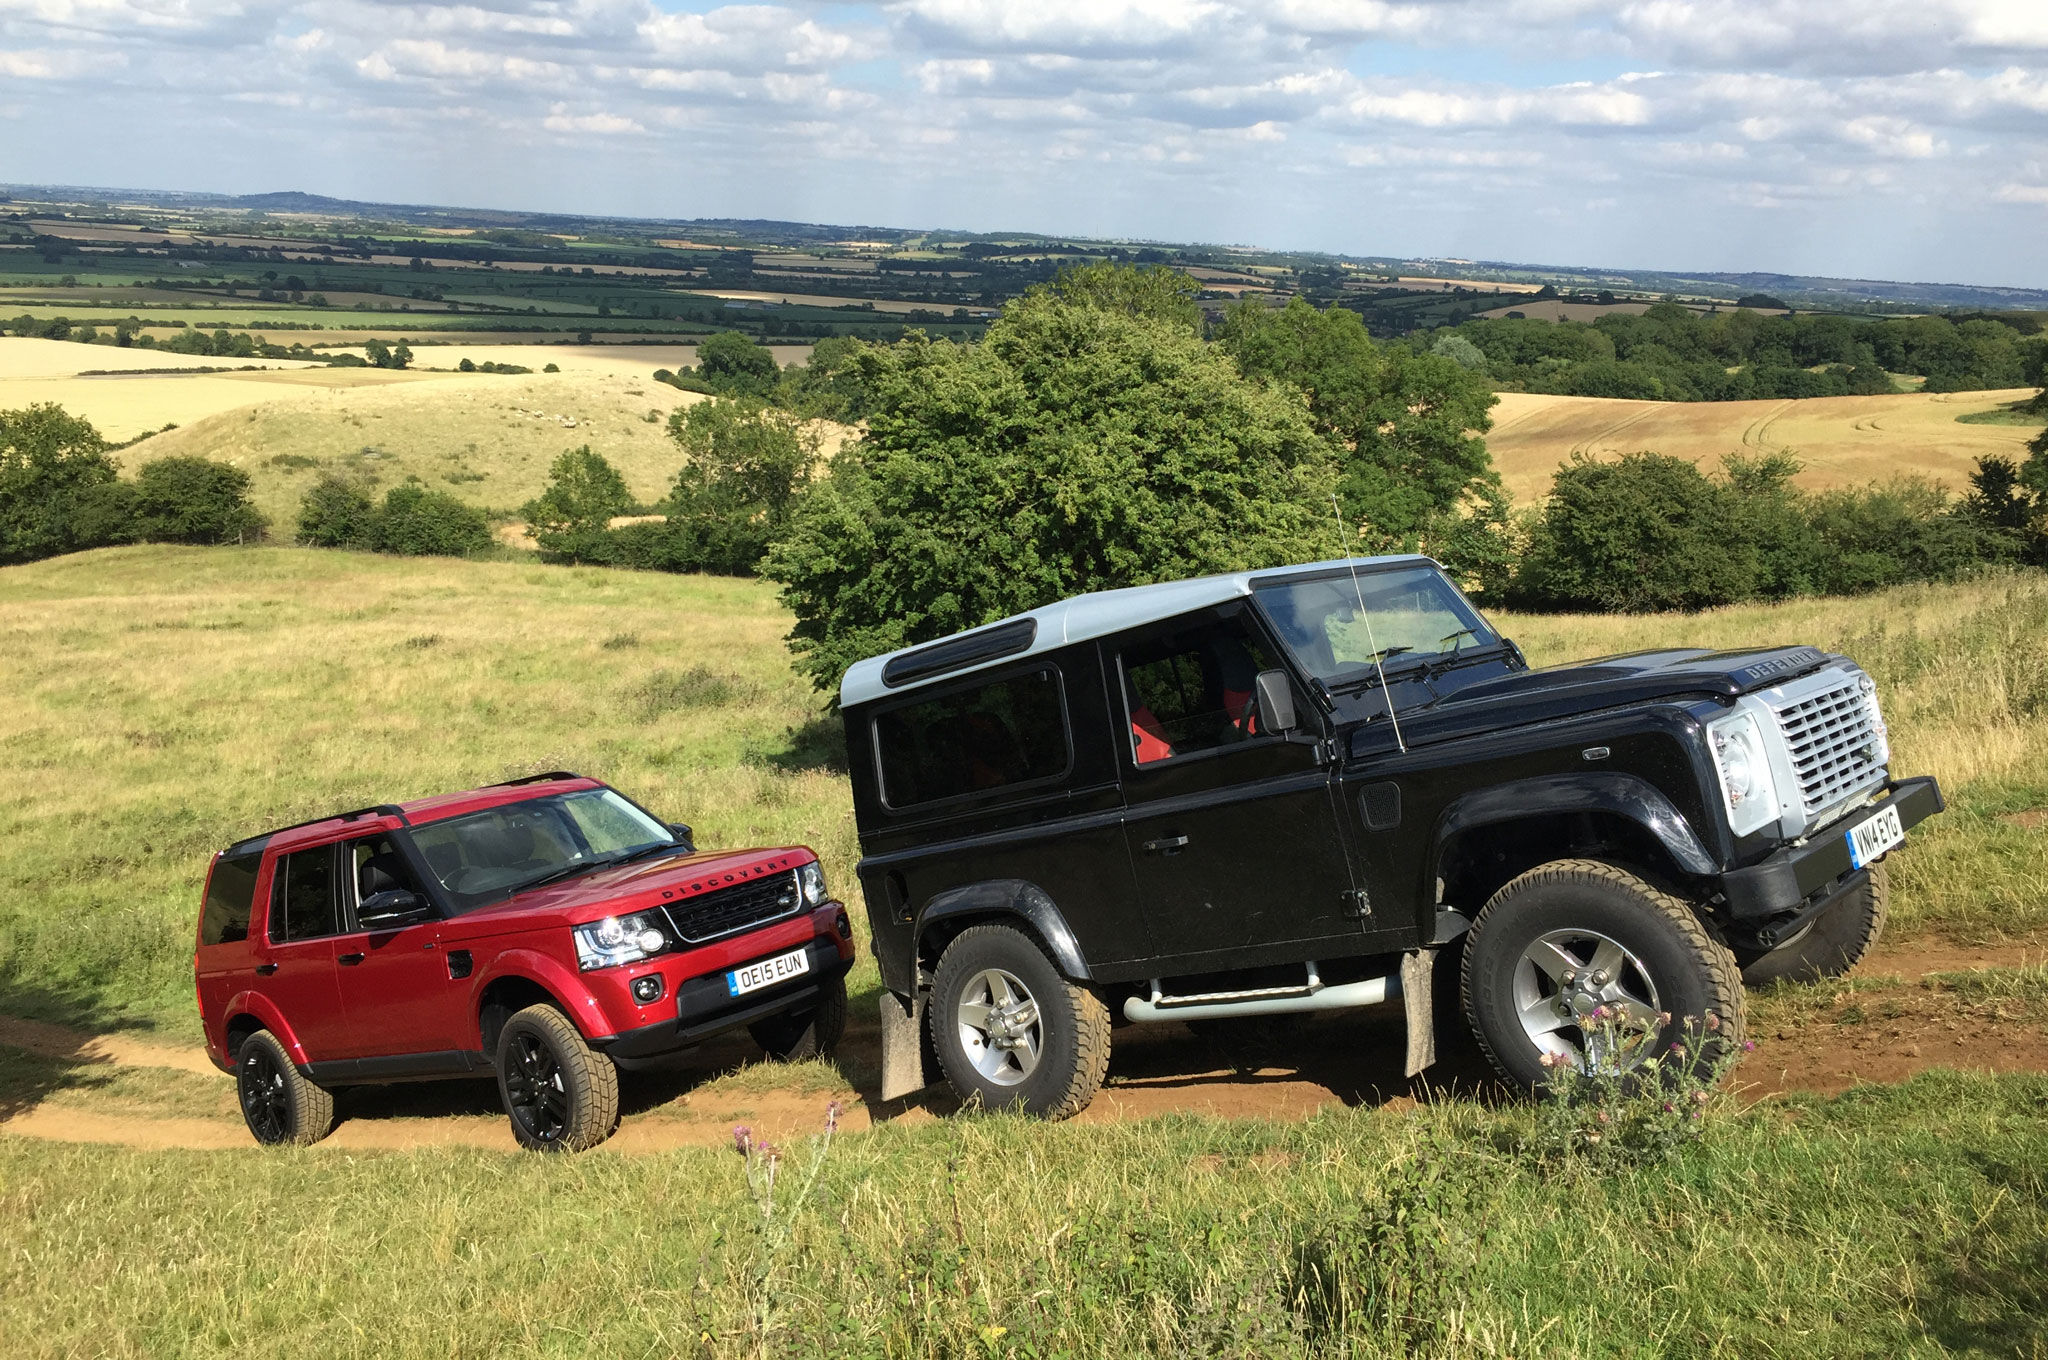 favourite cabin on rover sale prices magazine by for defender official edition land rovers modernises news date inside works of pictures specs landrover first old vintage an car